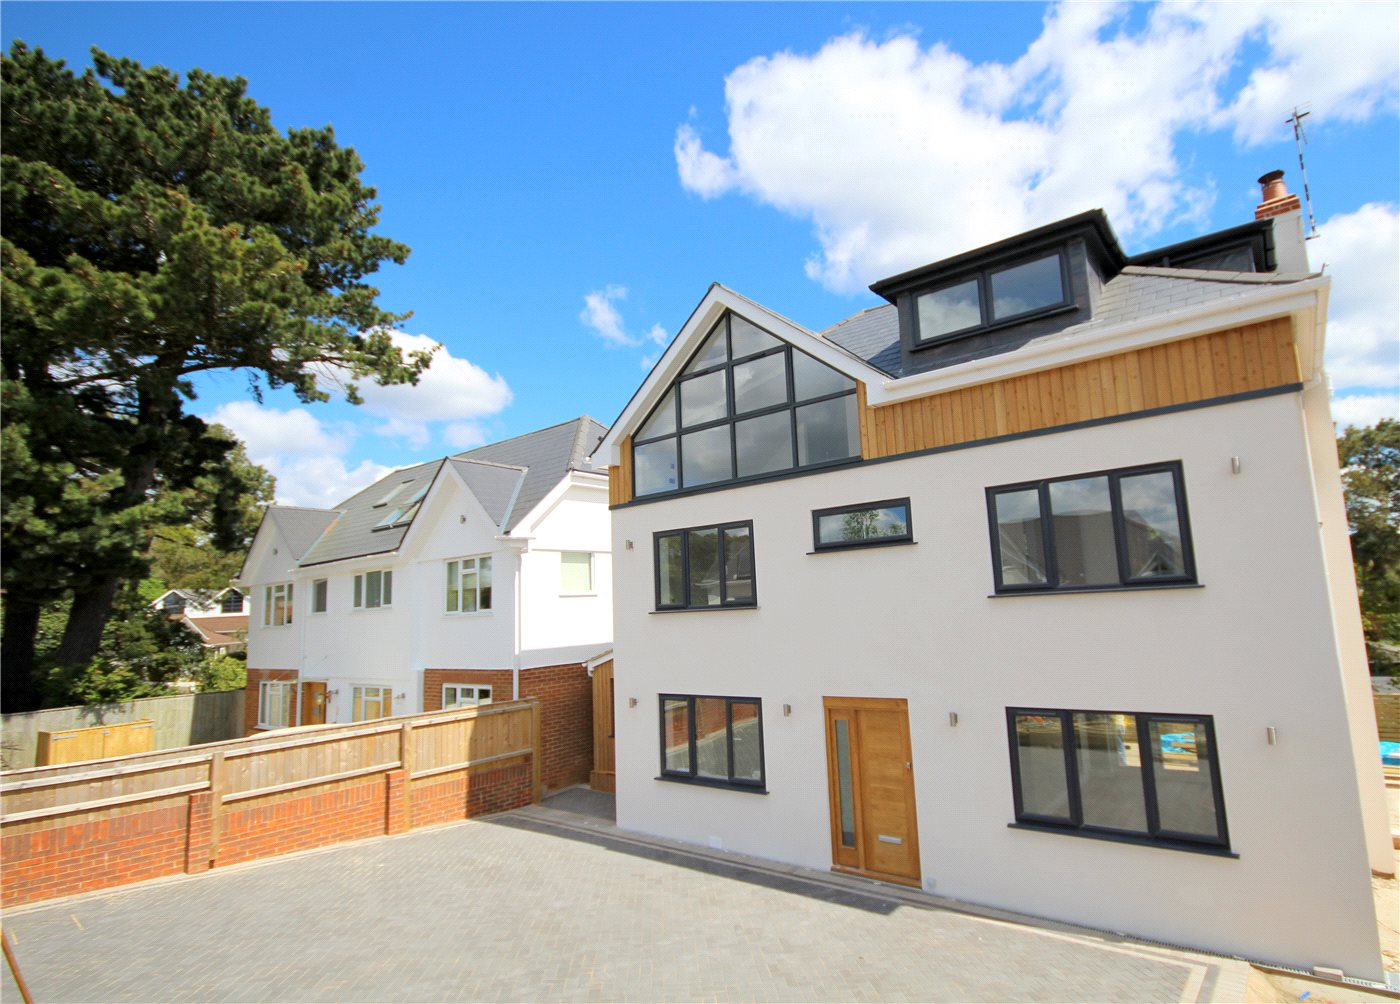 4 Bedrooms Detached House for sale in Excelsior Road, Lower Parkstone, Poole, Dorset, BH14